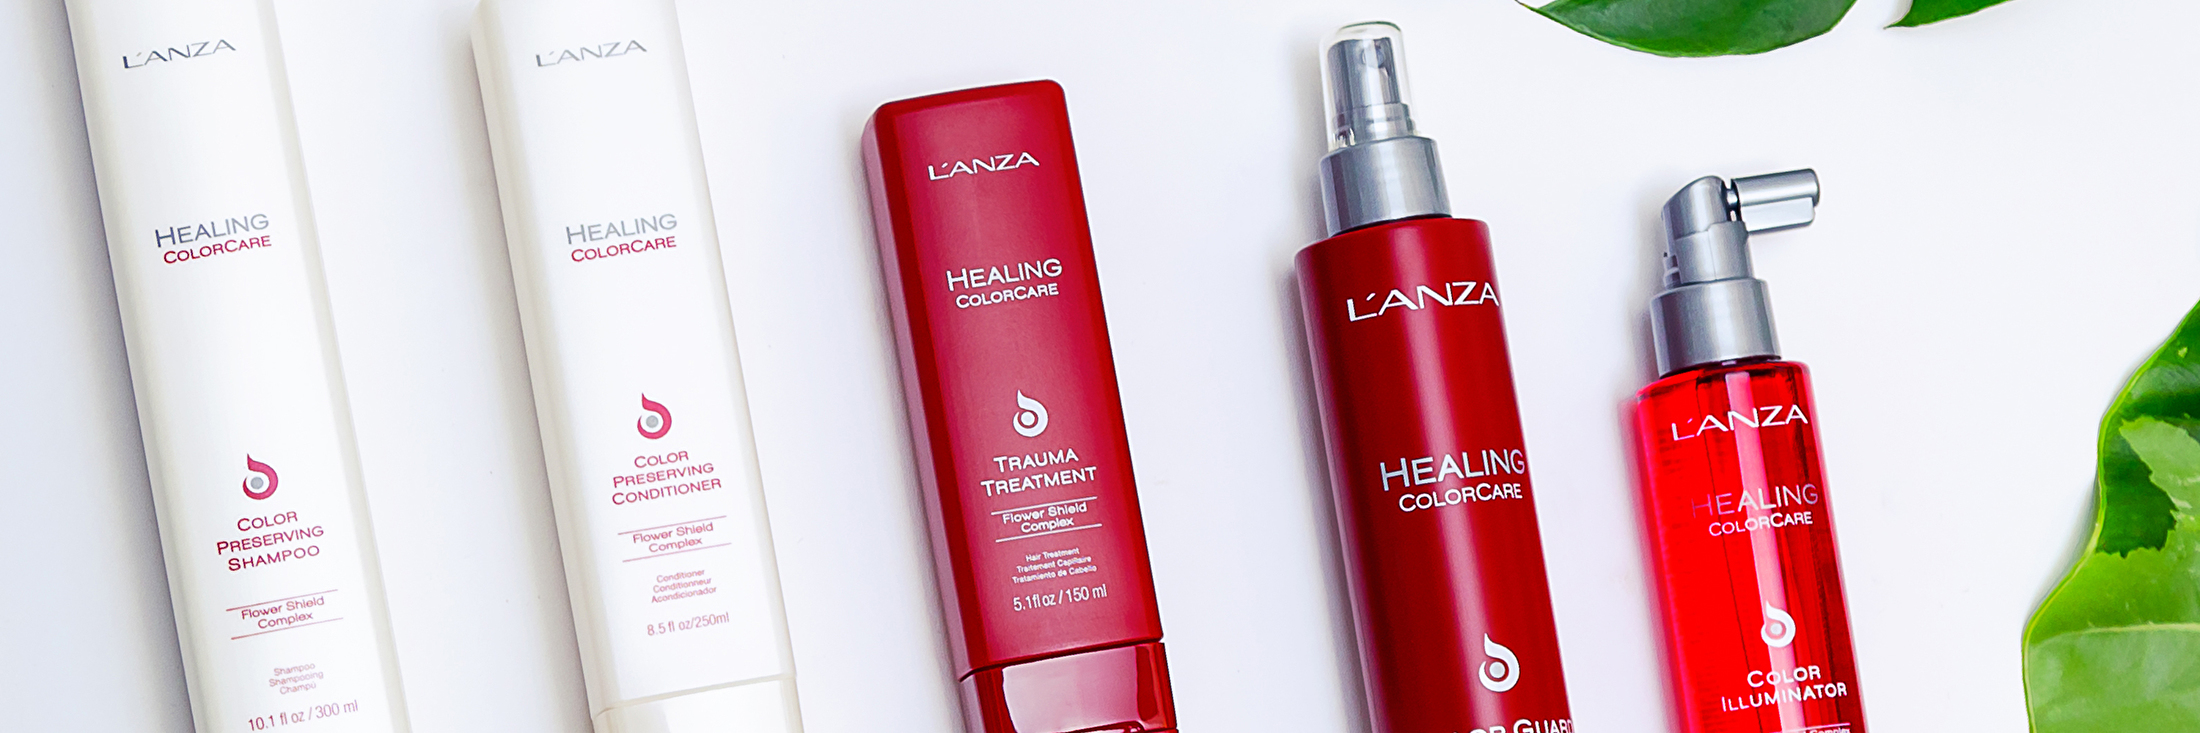 Healing ColorCare